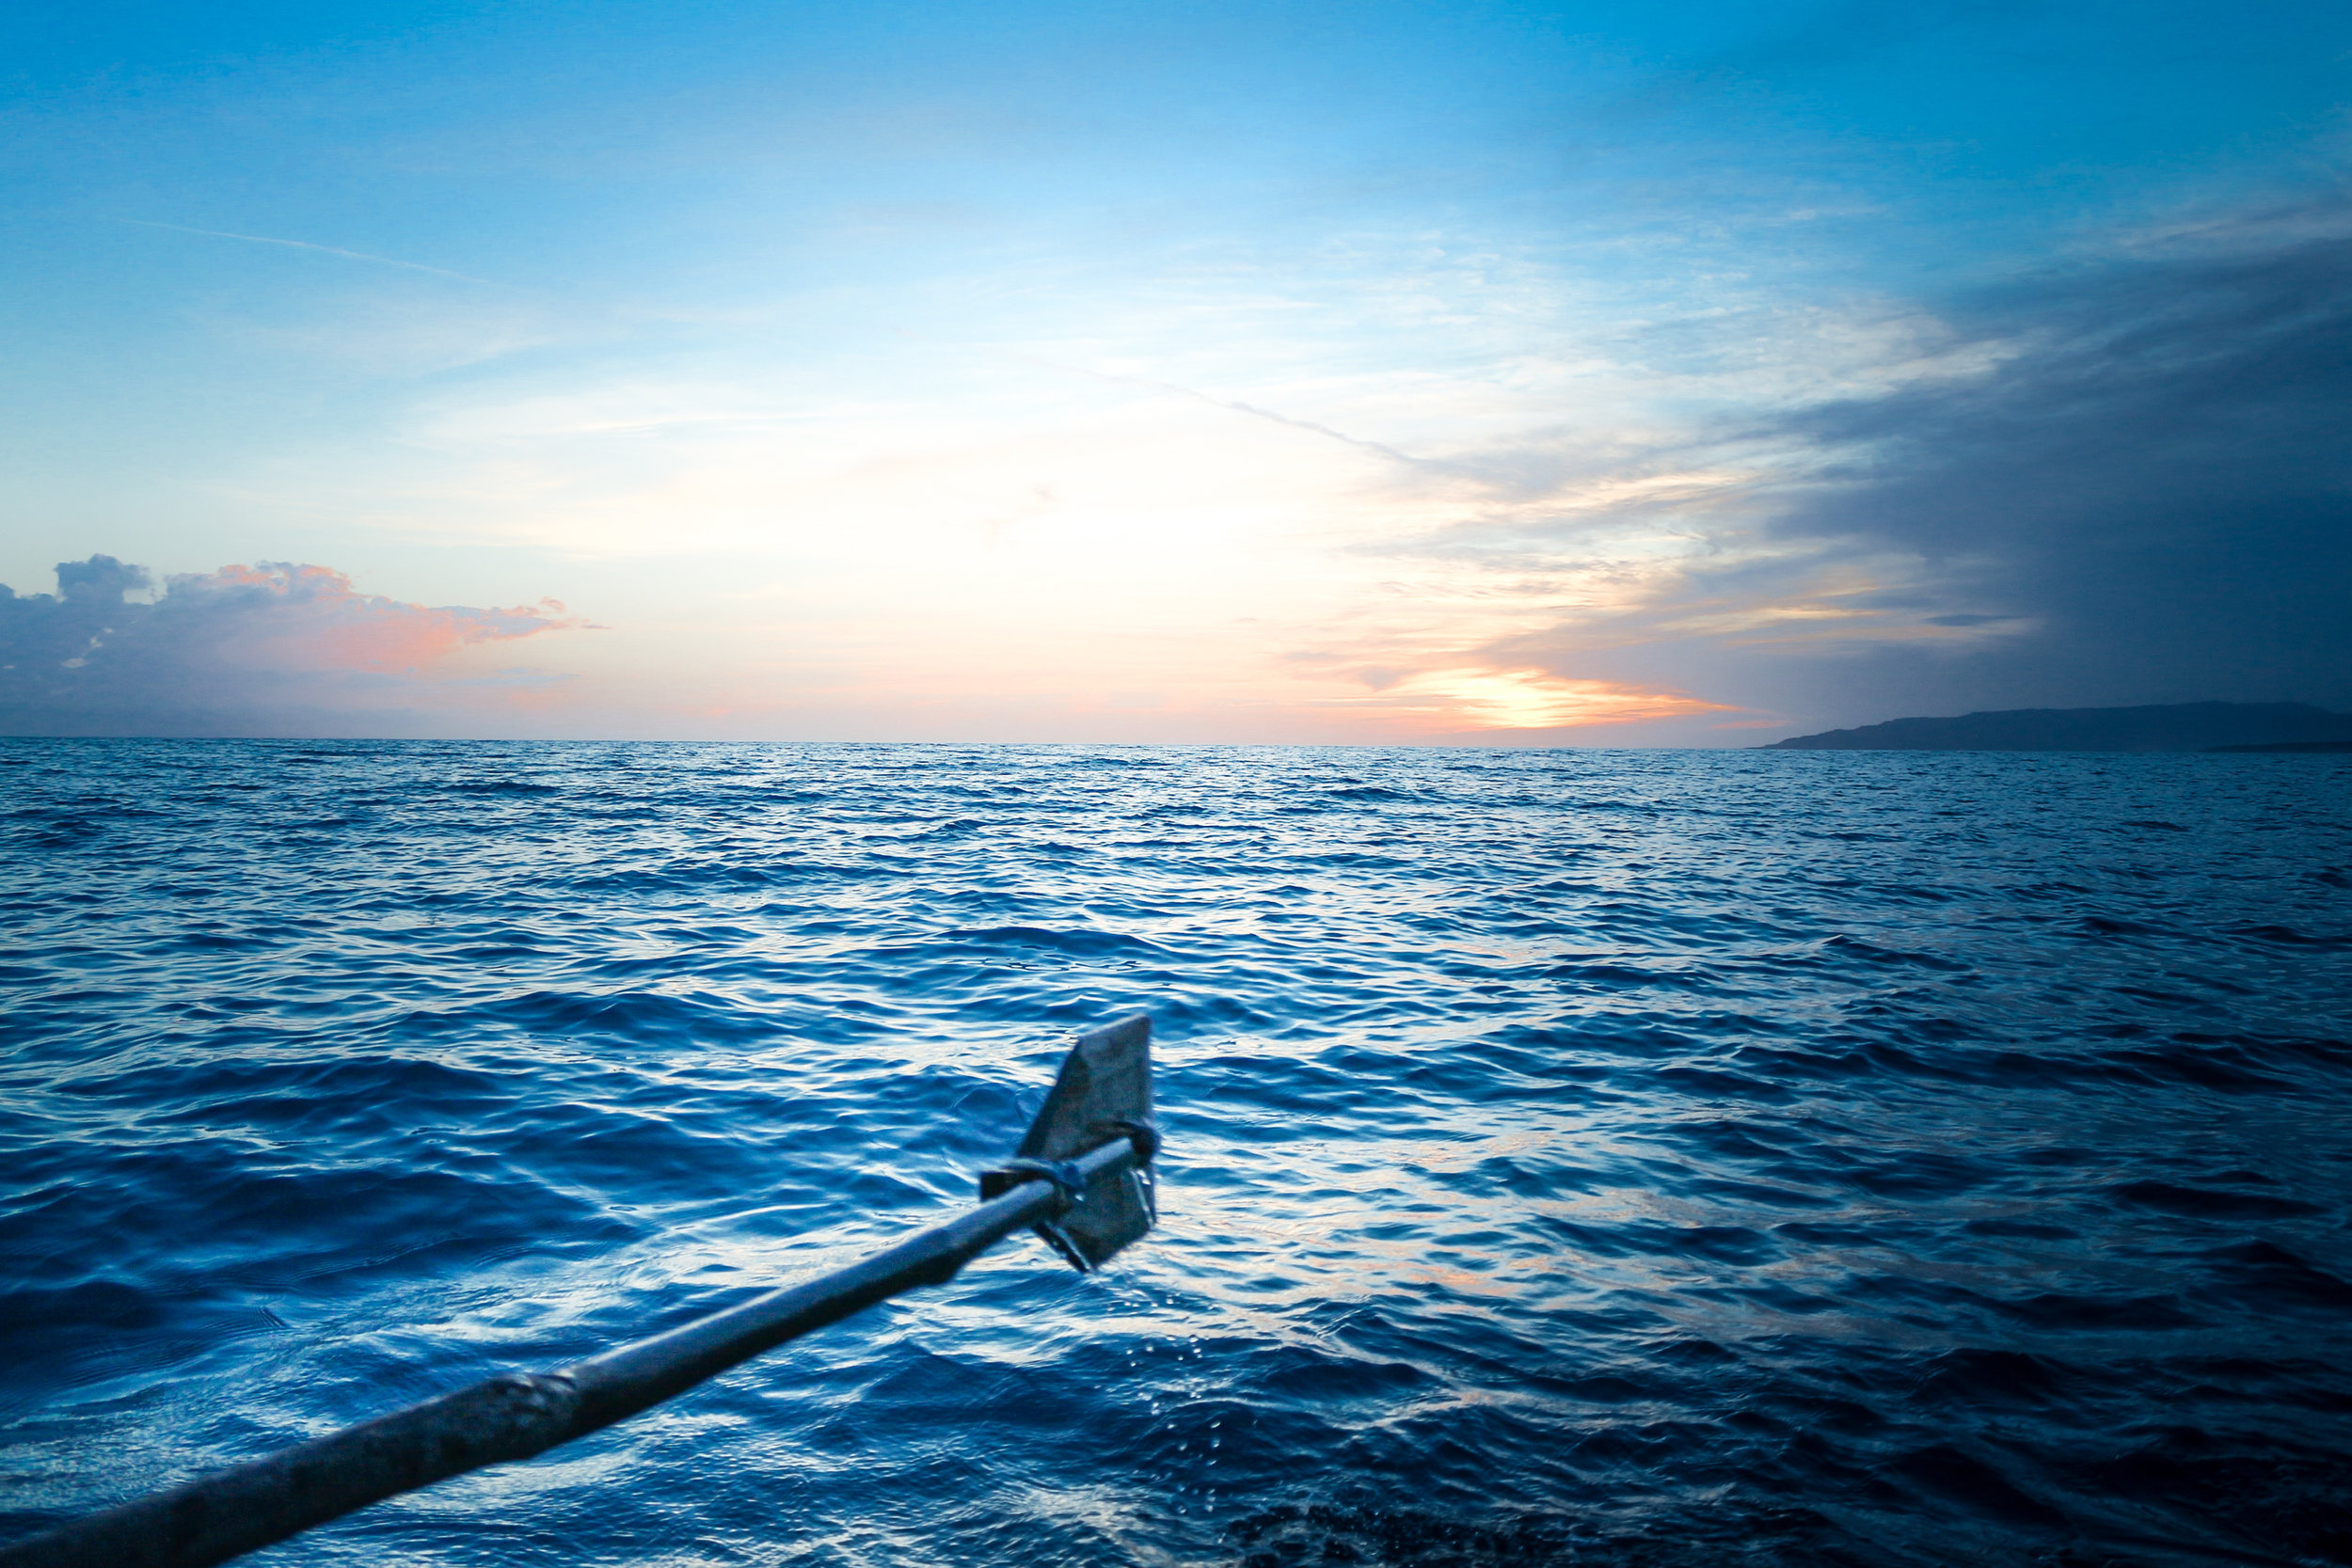 About - Find out about the man rowing solo across the Atlantic.